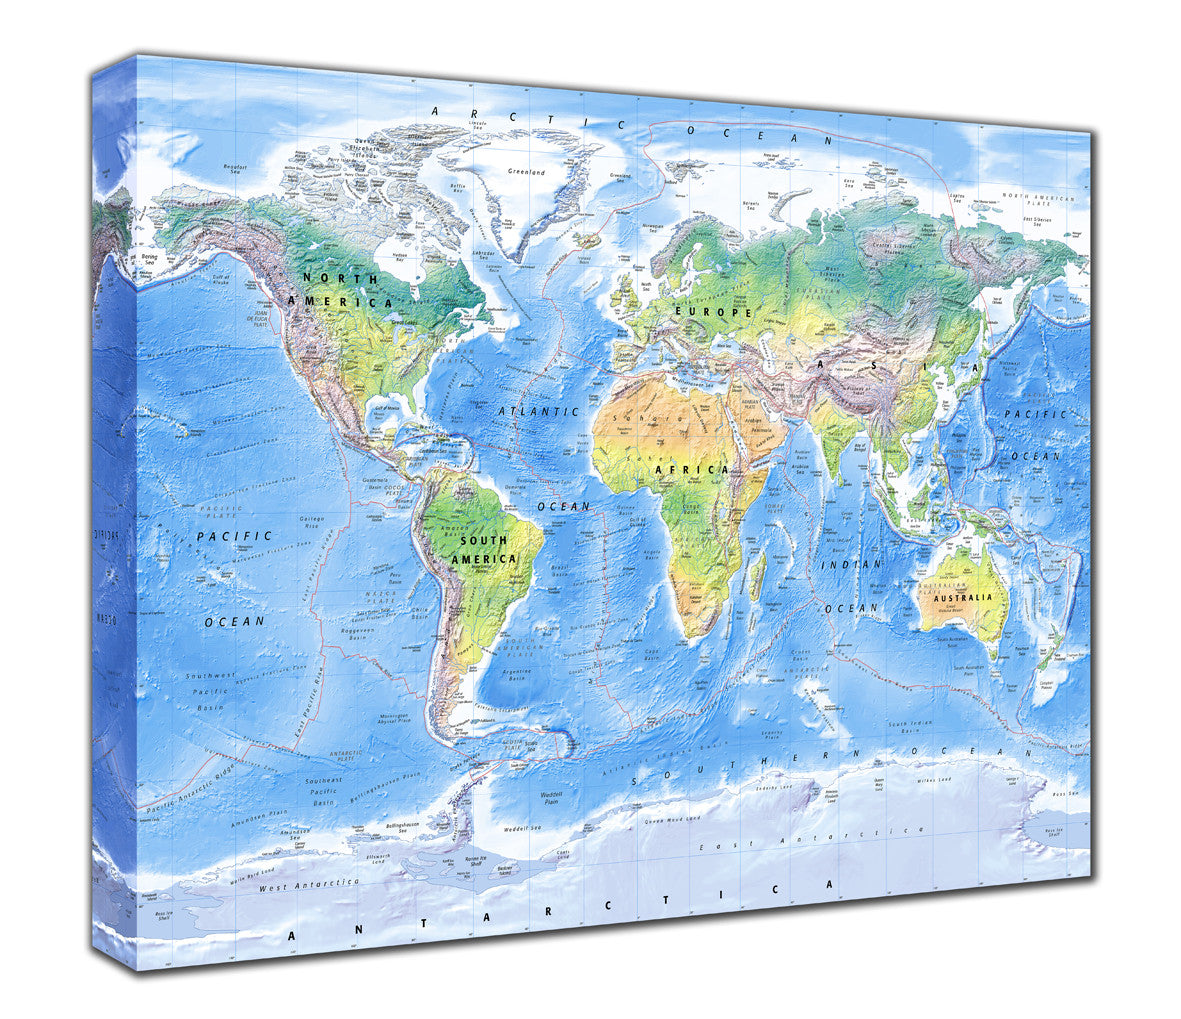 Map Canvas Physical World Map From Love Maps On - Physical world map